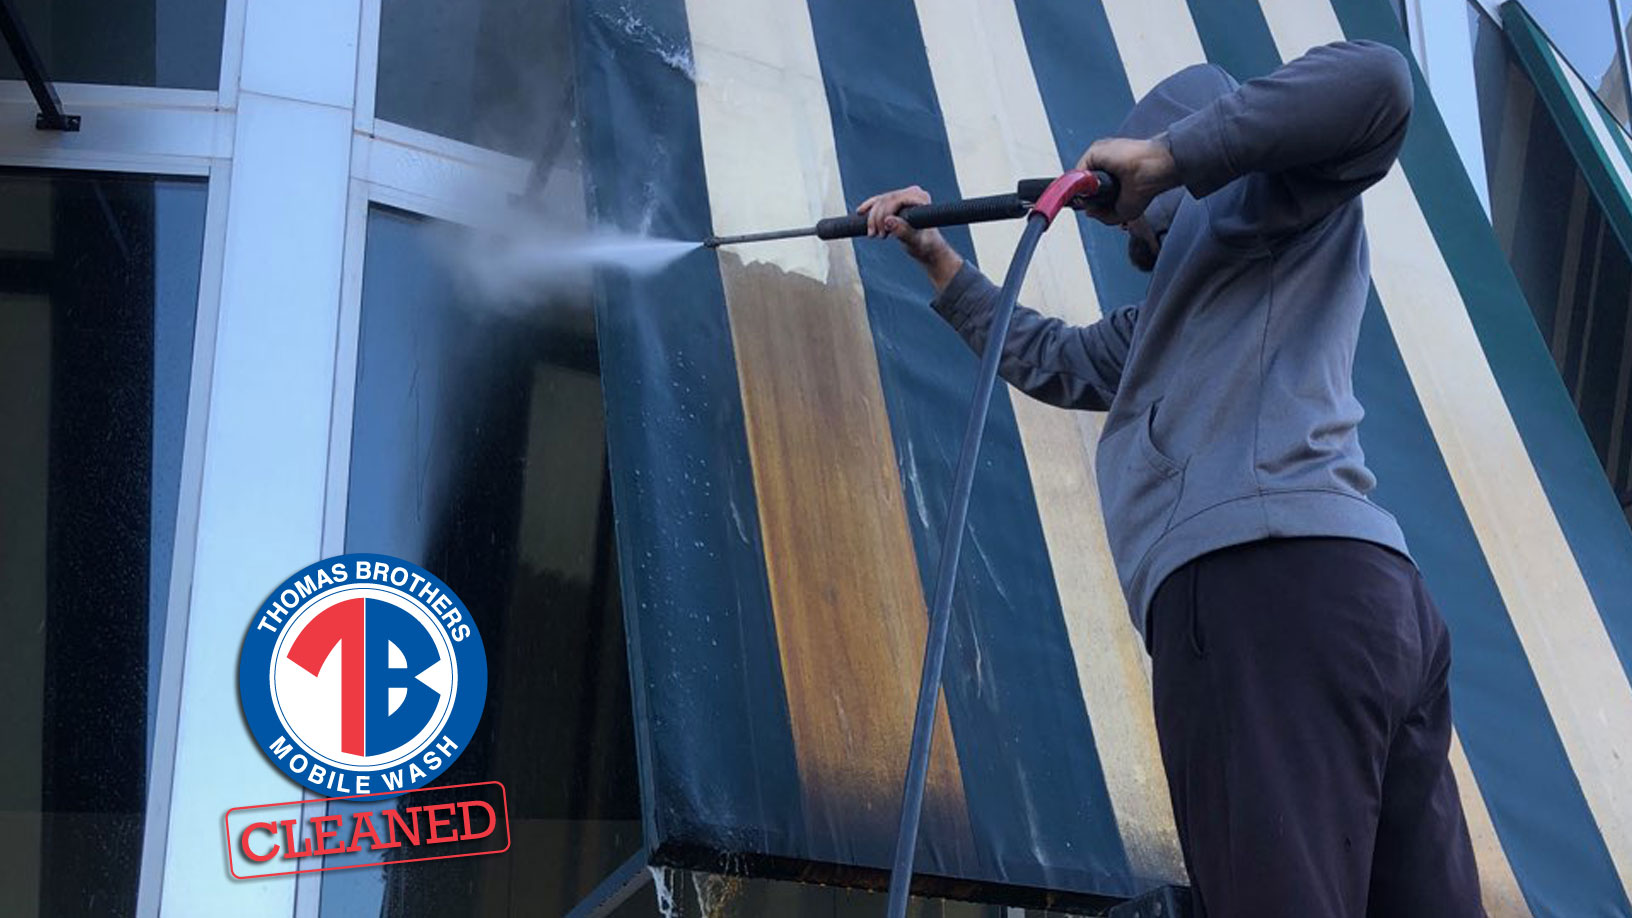 bradley-fair-powerwashing-thomasbros-3.jpg